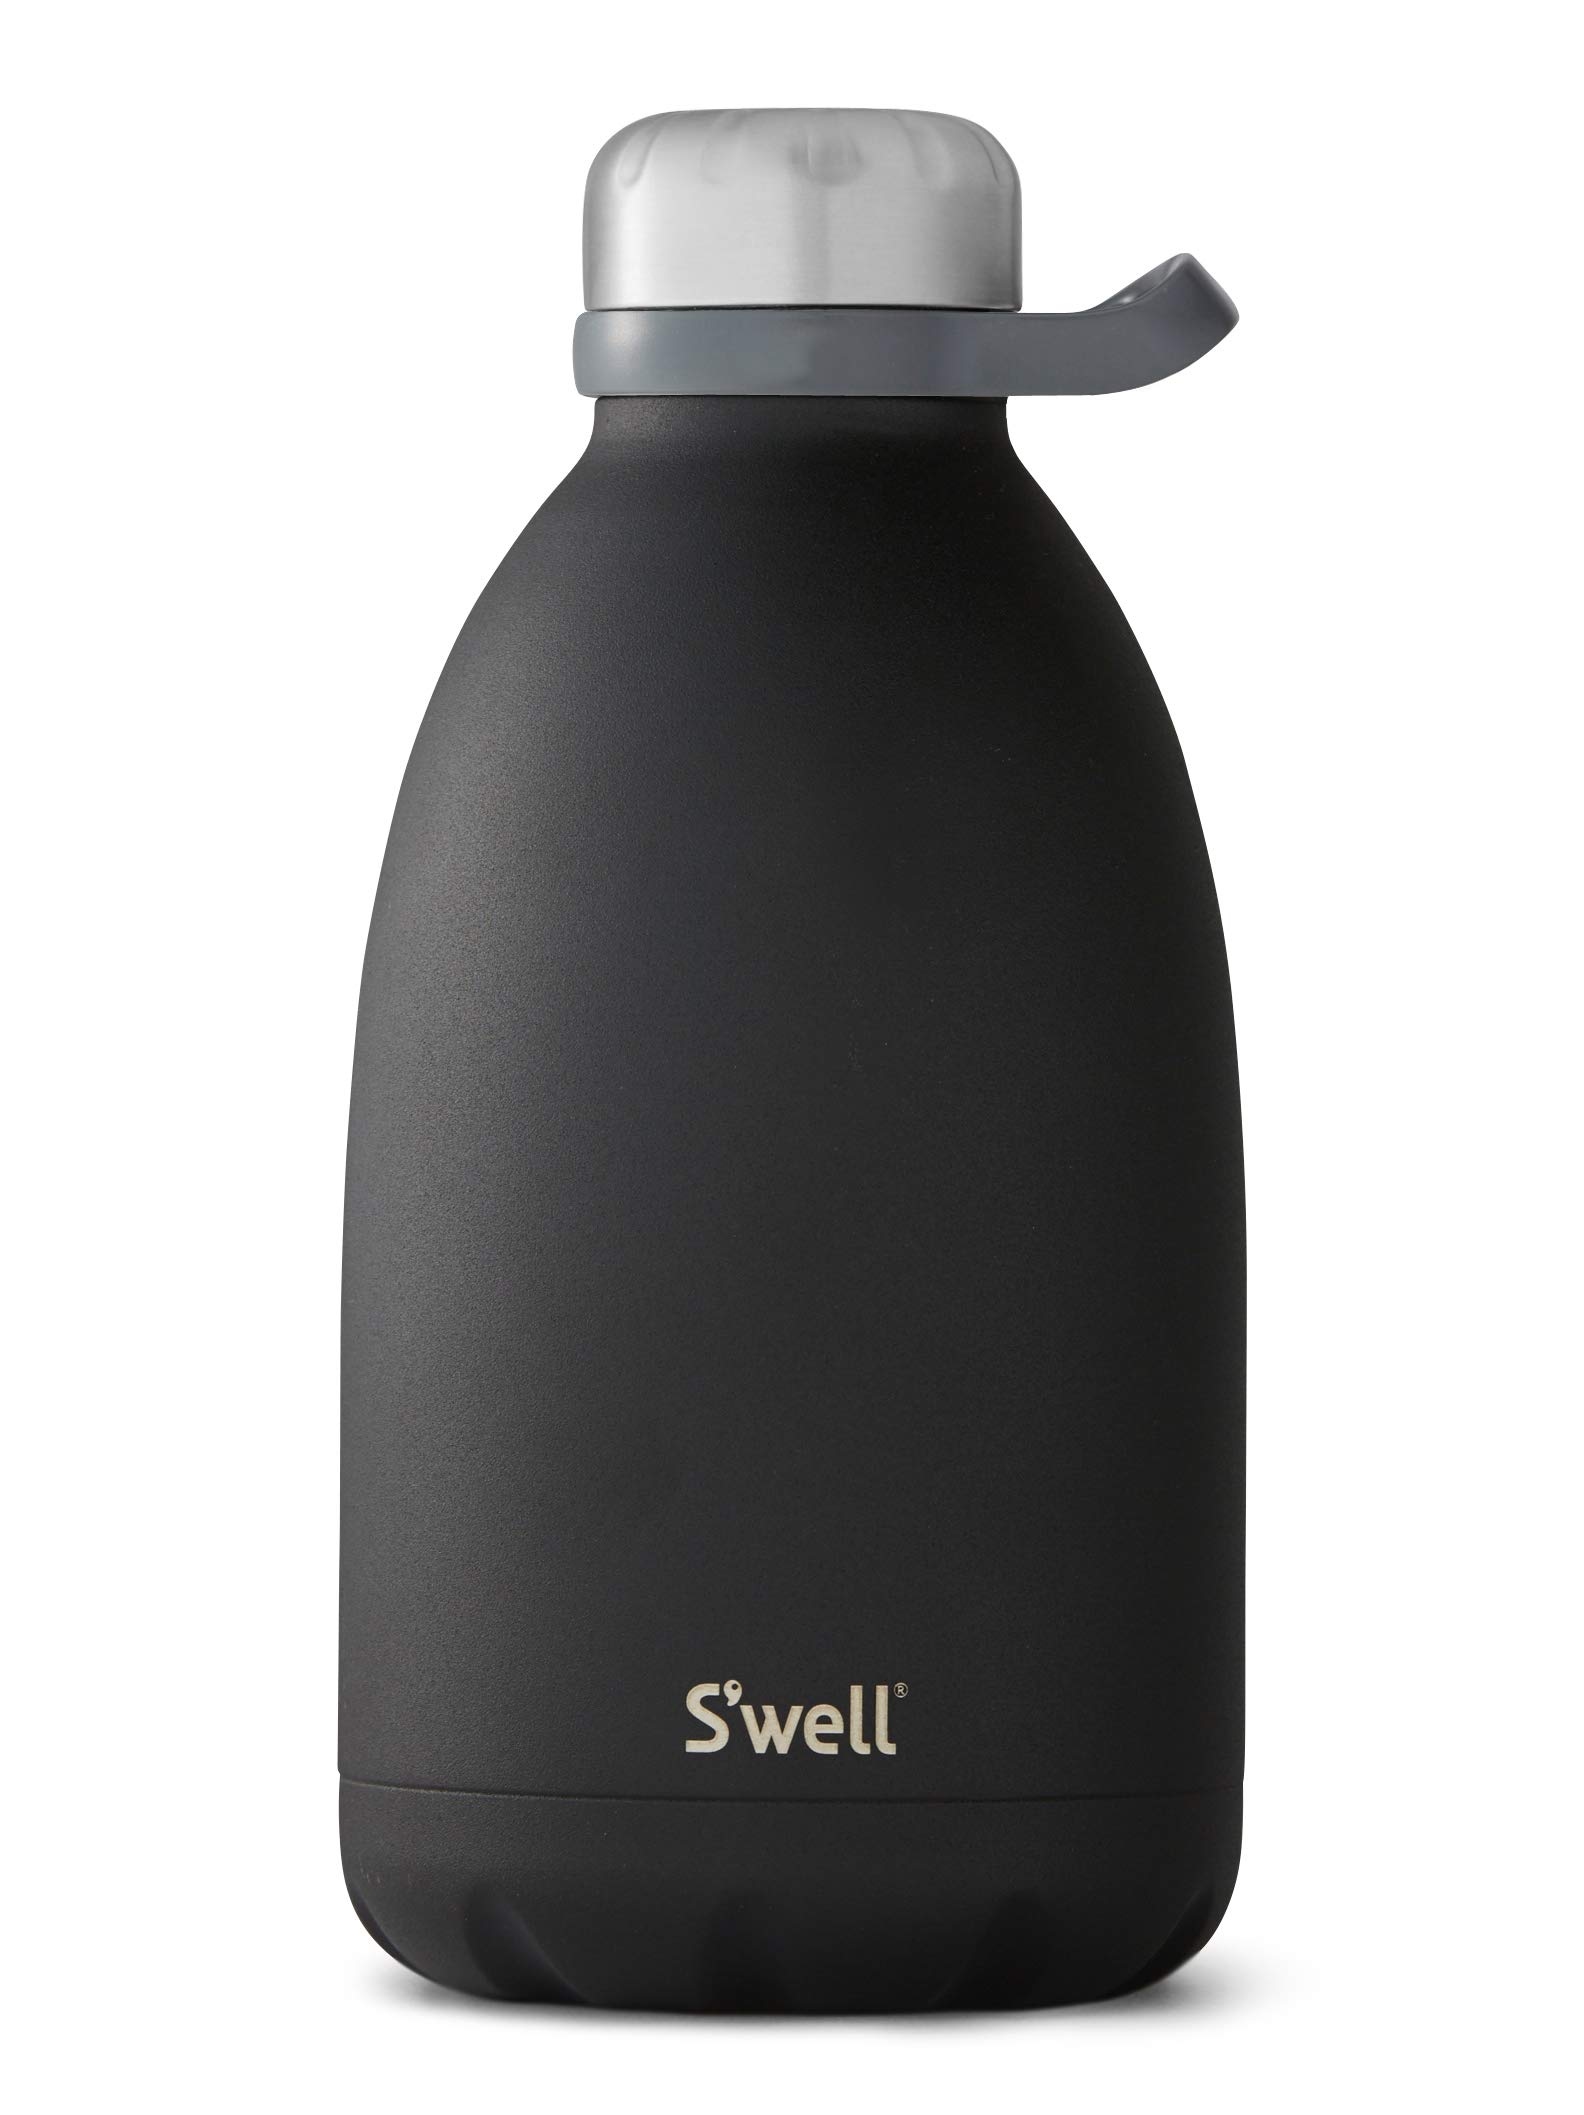 S'well Insulated Stainless Steel Roamer, 64oz, Onyx